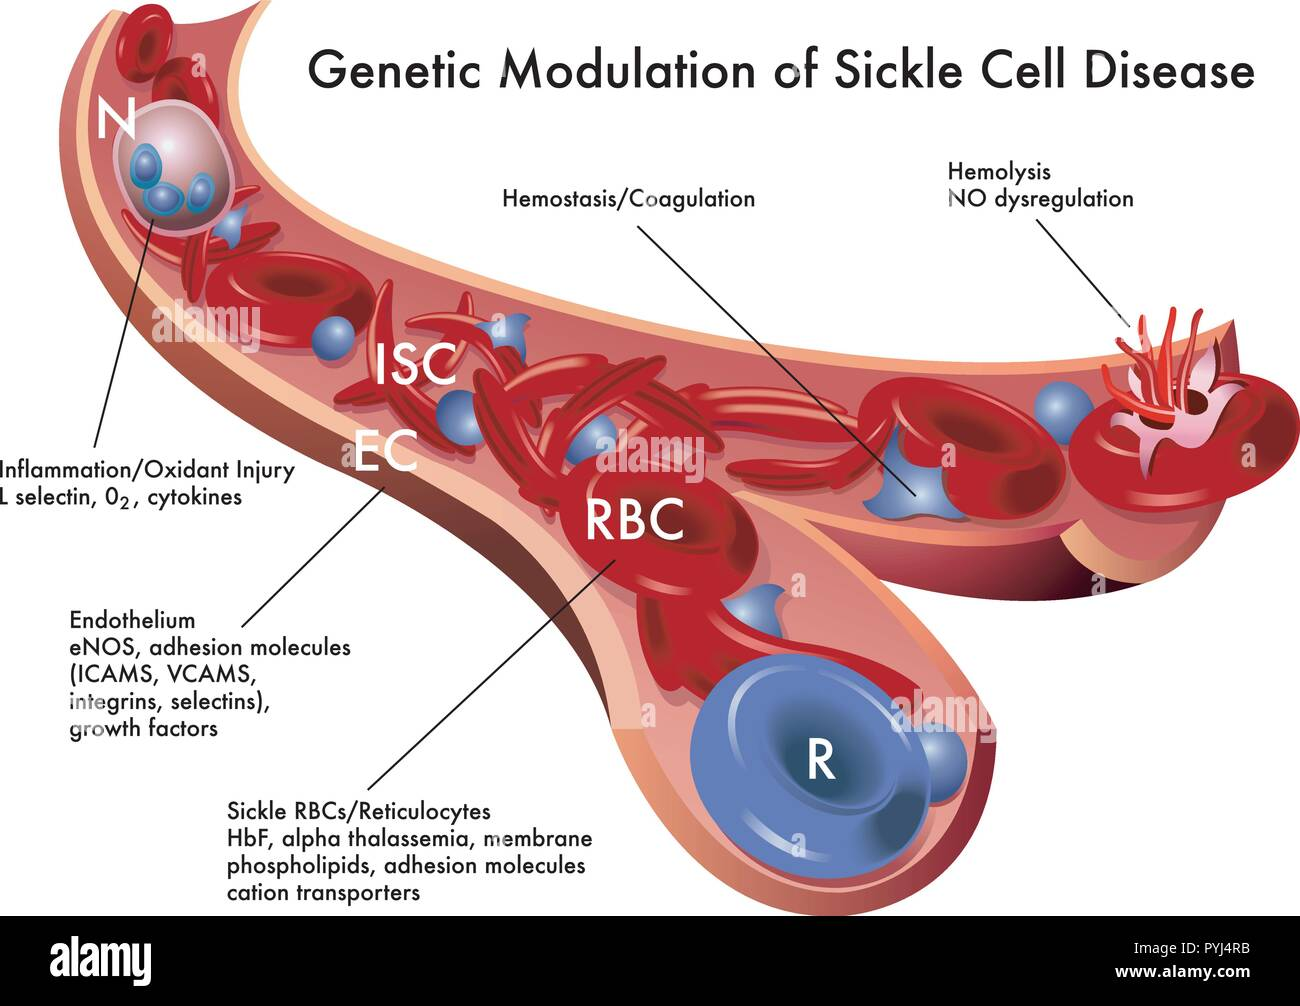 medical illustration of the genetic modulation of sickle cell disease - Stock Image